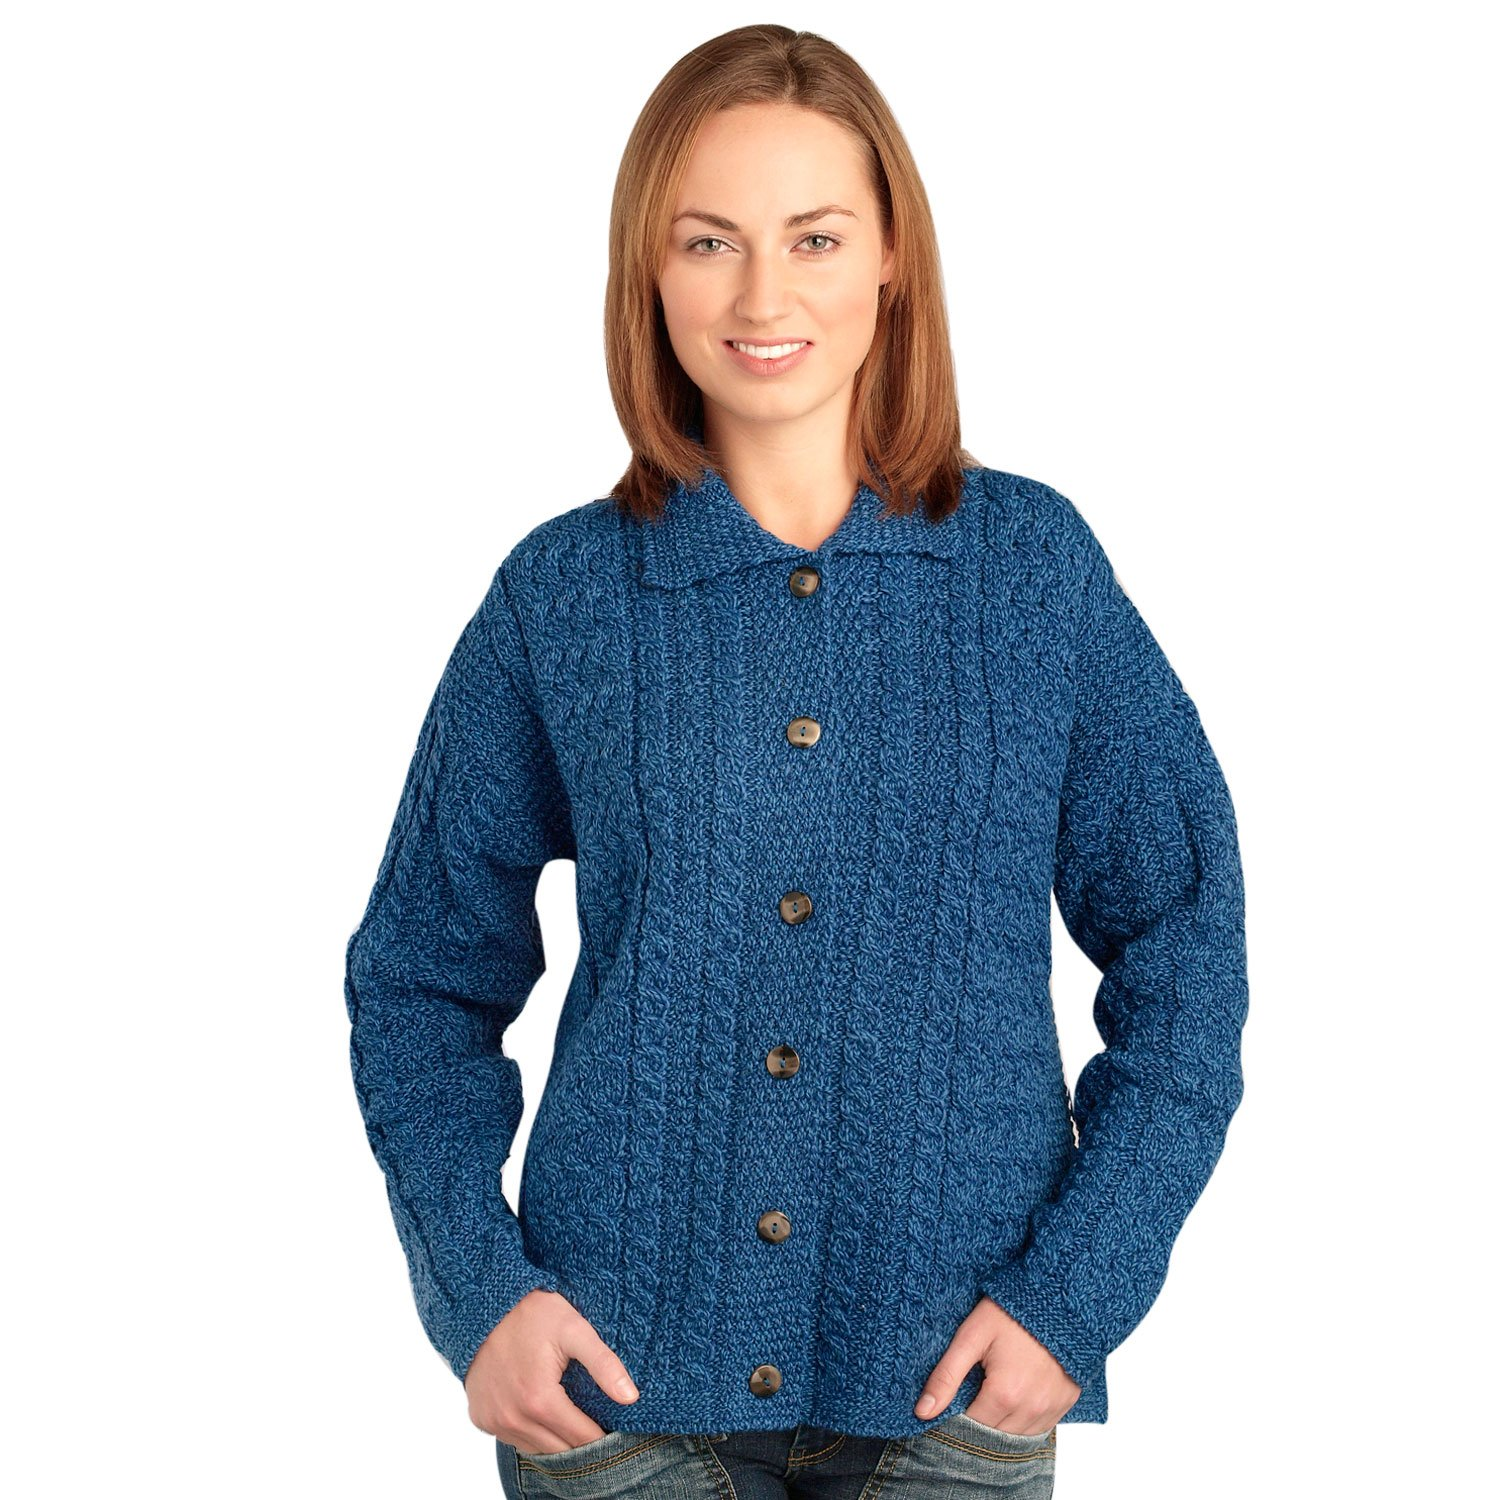 1940s Sweater Styles 100% Irish Merino Wool Merino Button Collar Sweater $87.50 AT vintagedancer.com